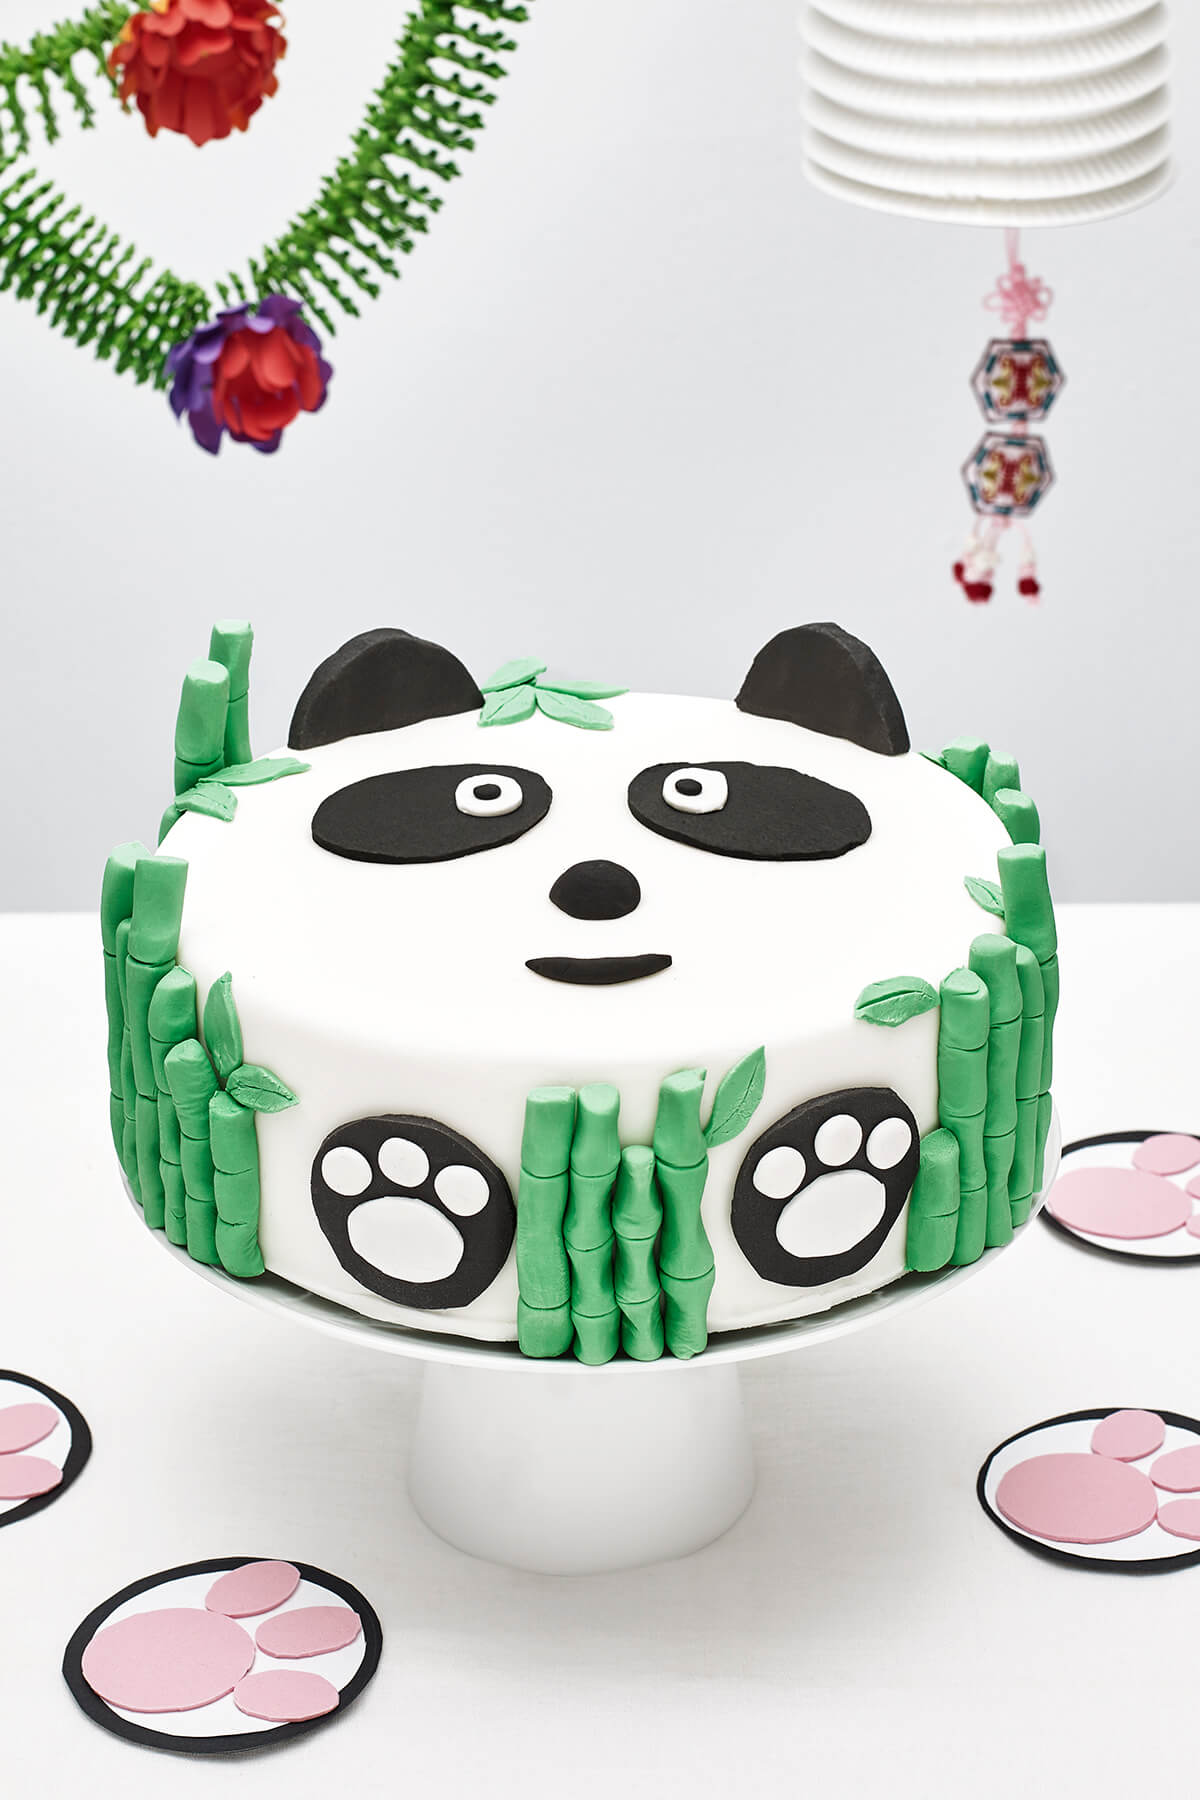 Panda Themed DIY Birthday Cake Decorating Kit for Kids ...